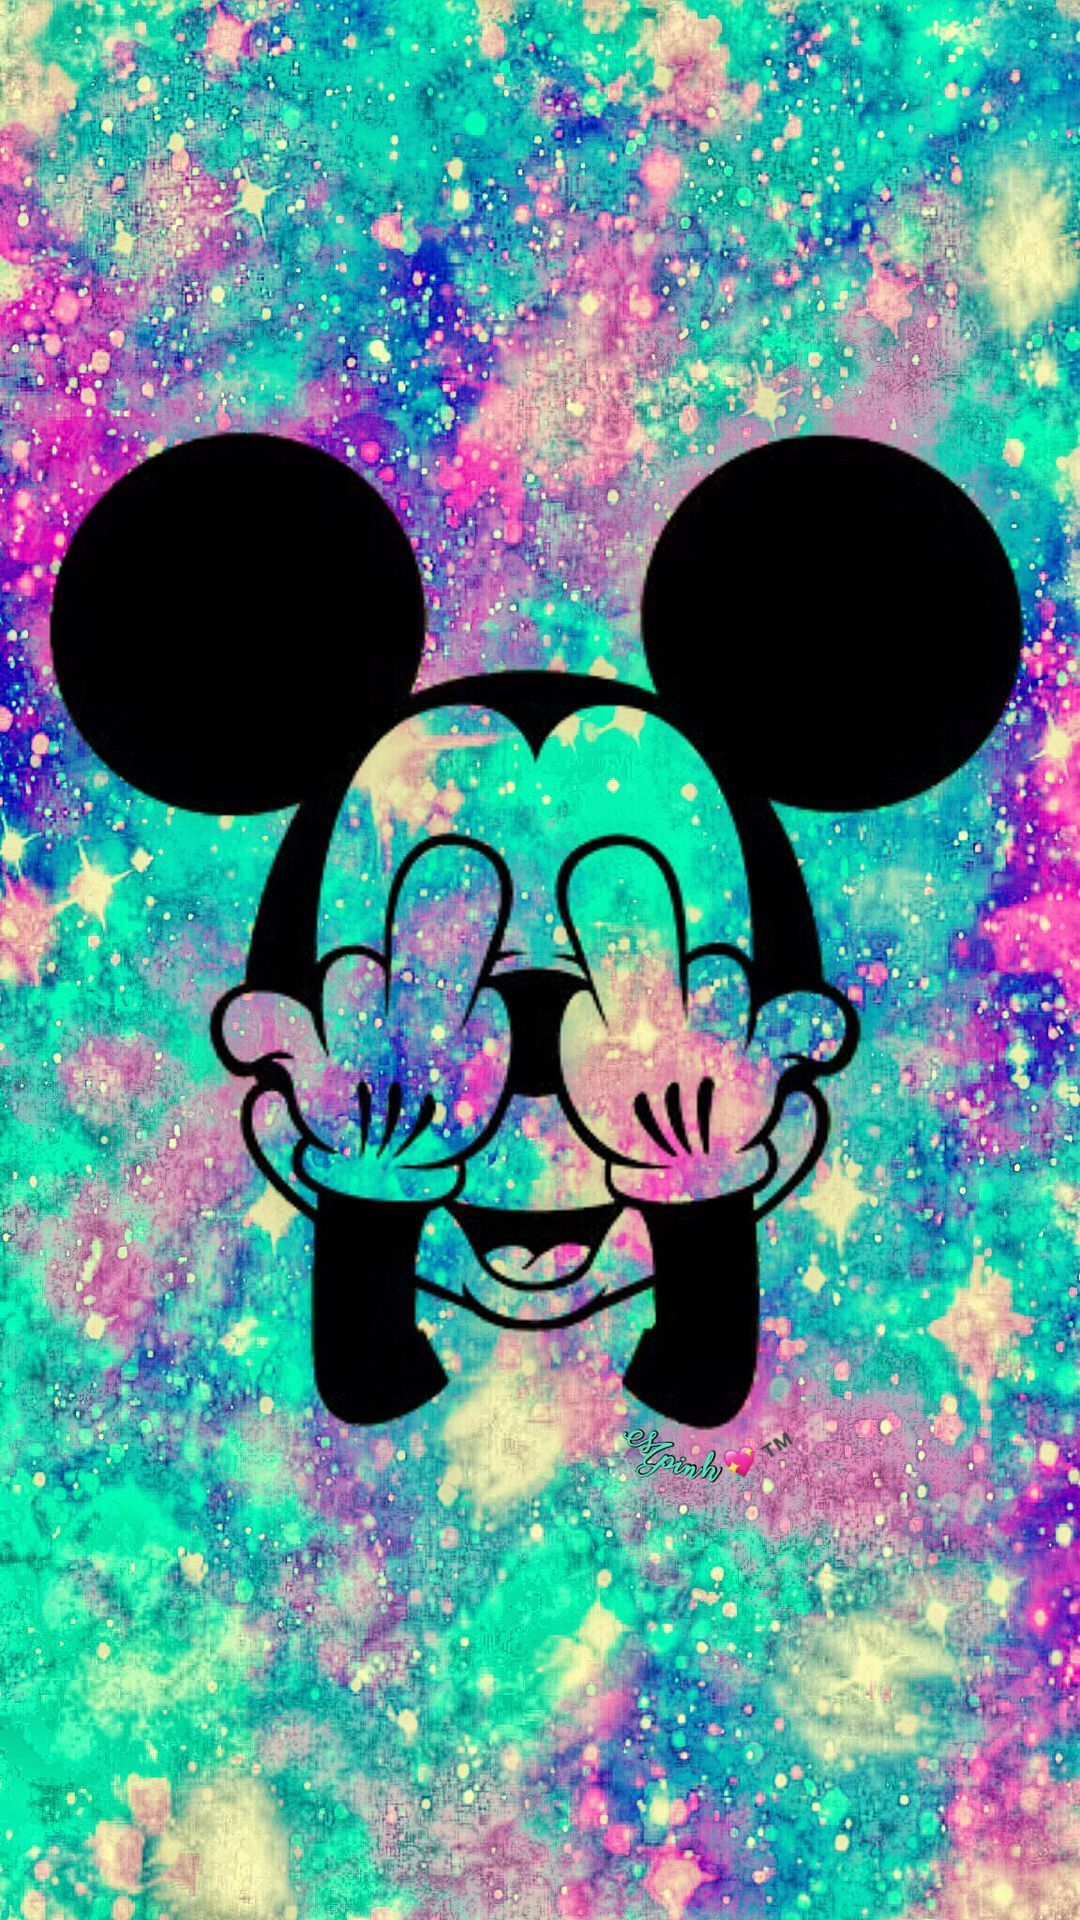 Cute Mickey Mouse Photo On Home Screen On Kecbio Com Iphone Android Wallpaper Cute In 2020 Hipster Wallpaper Iphone Wallpaper Hipster Wallpaper Iphone Cute